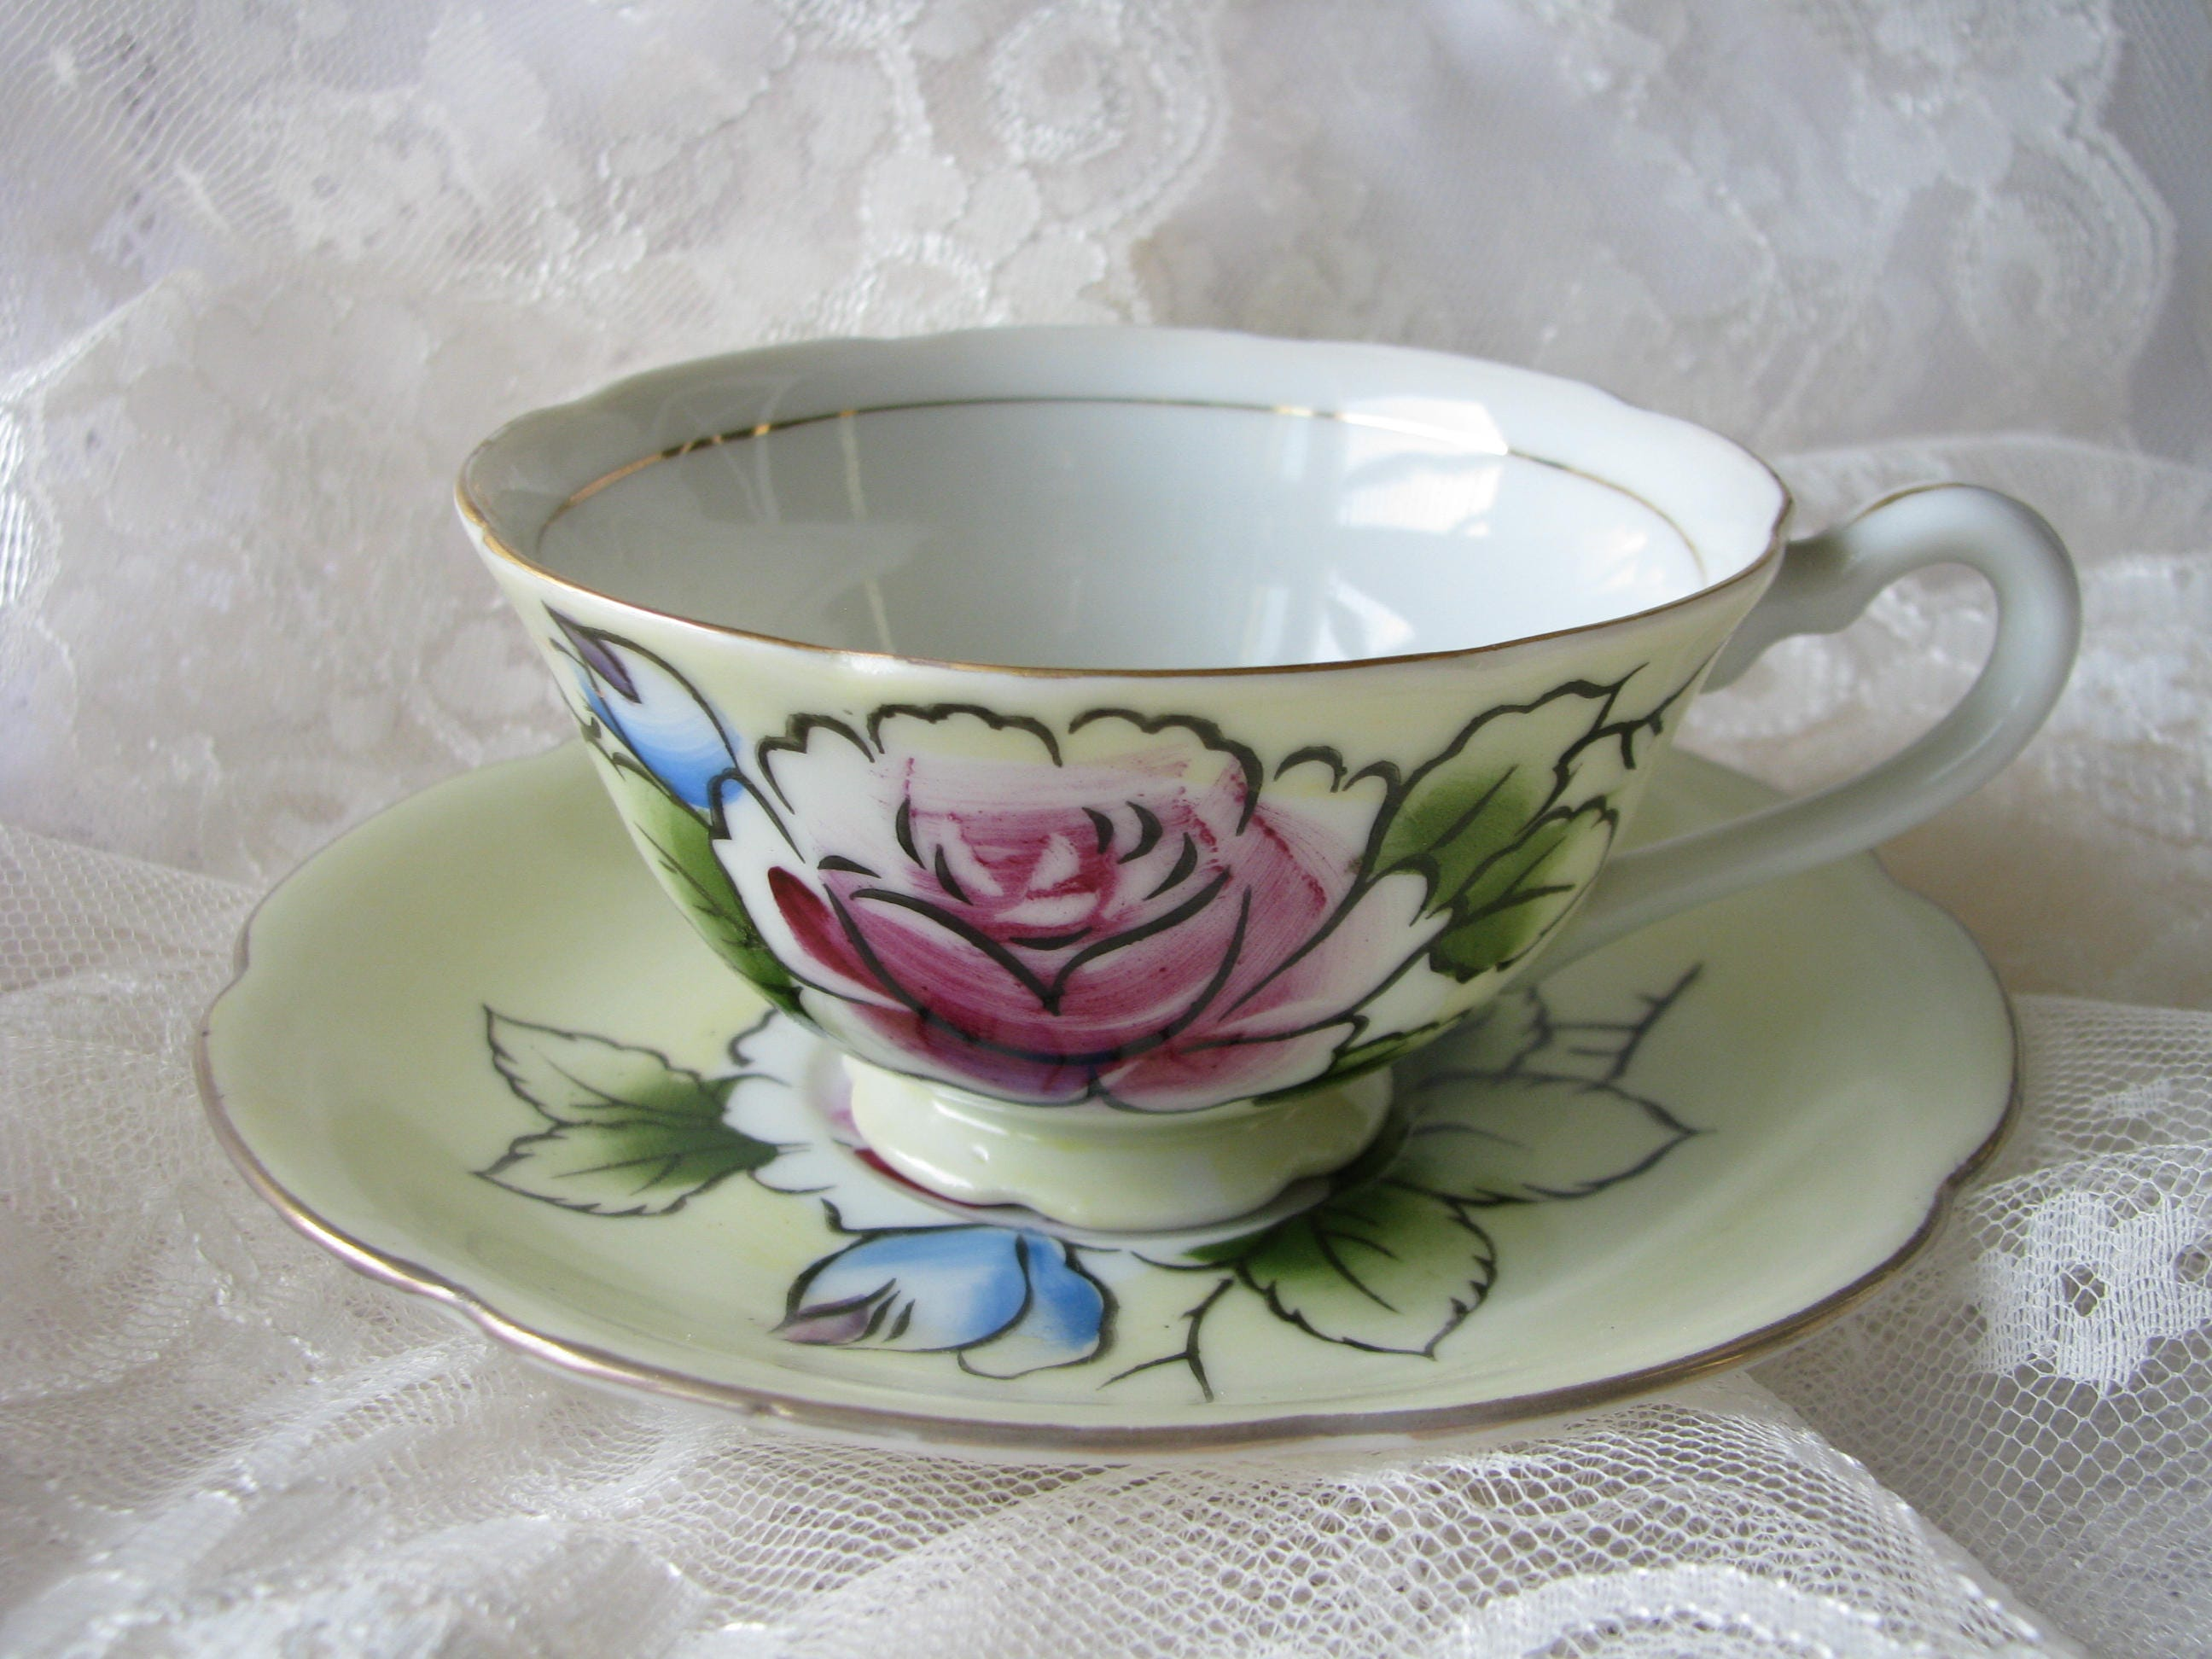 Shafford Cup Yellow Cup Hand Painted Cup Flower Cup Pink Rose Cup